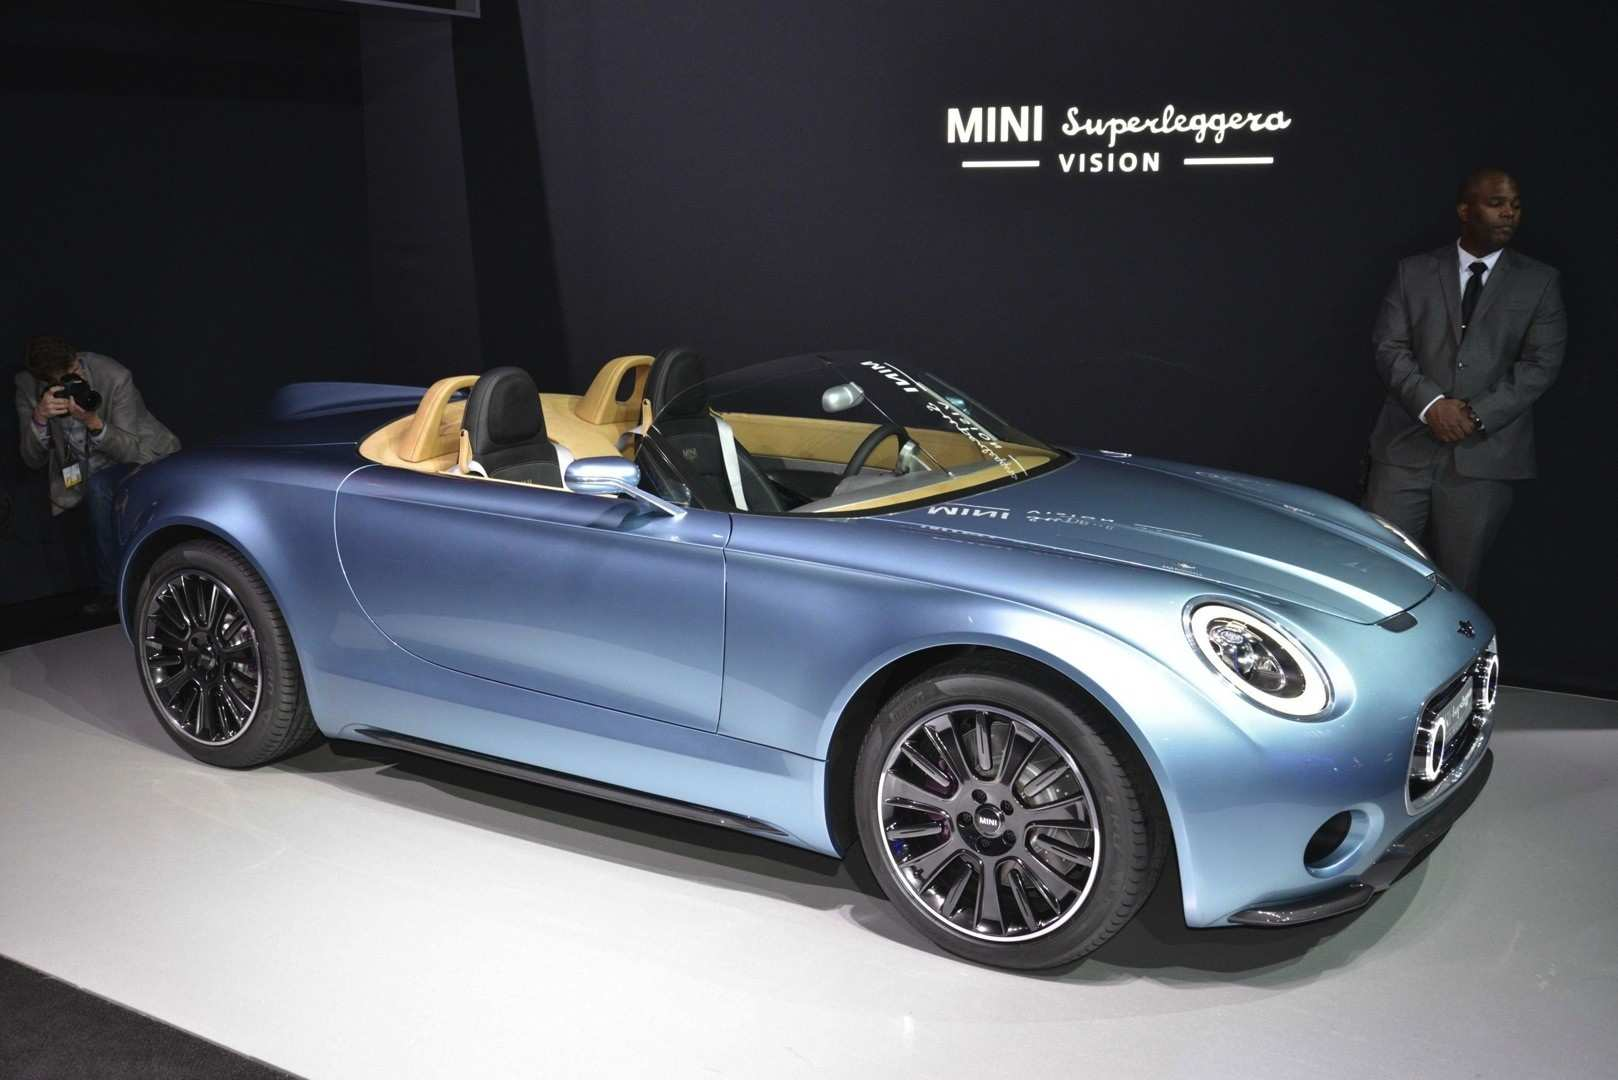 18 New 2019 Mini Superleggera Pricing